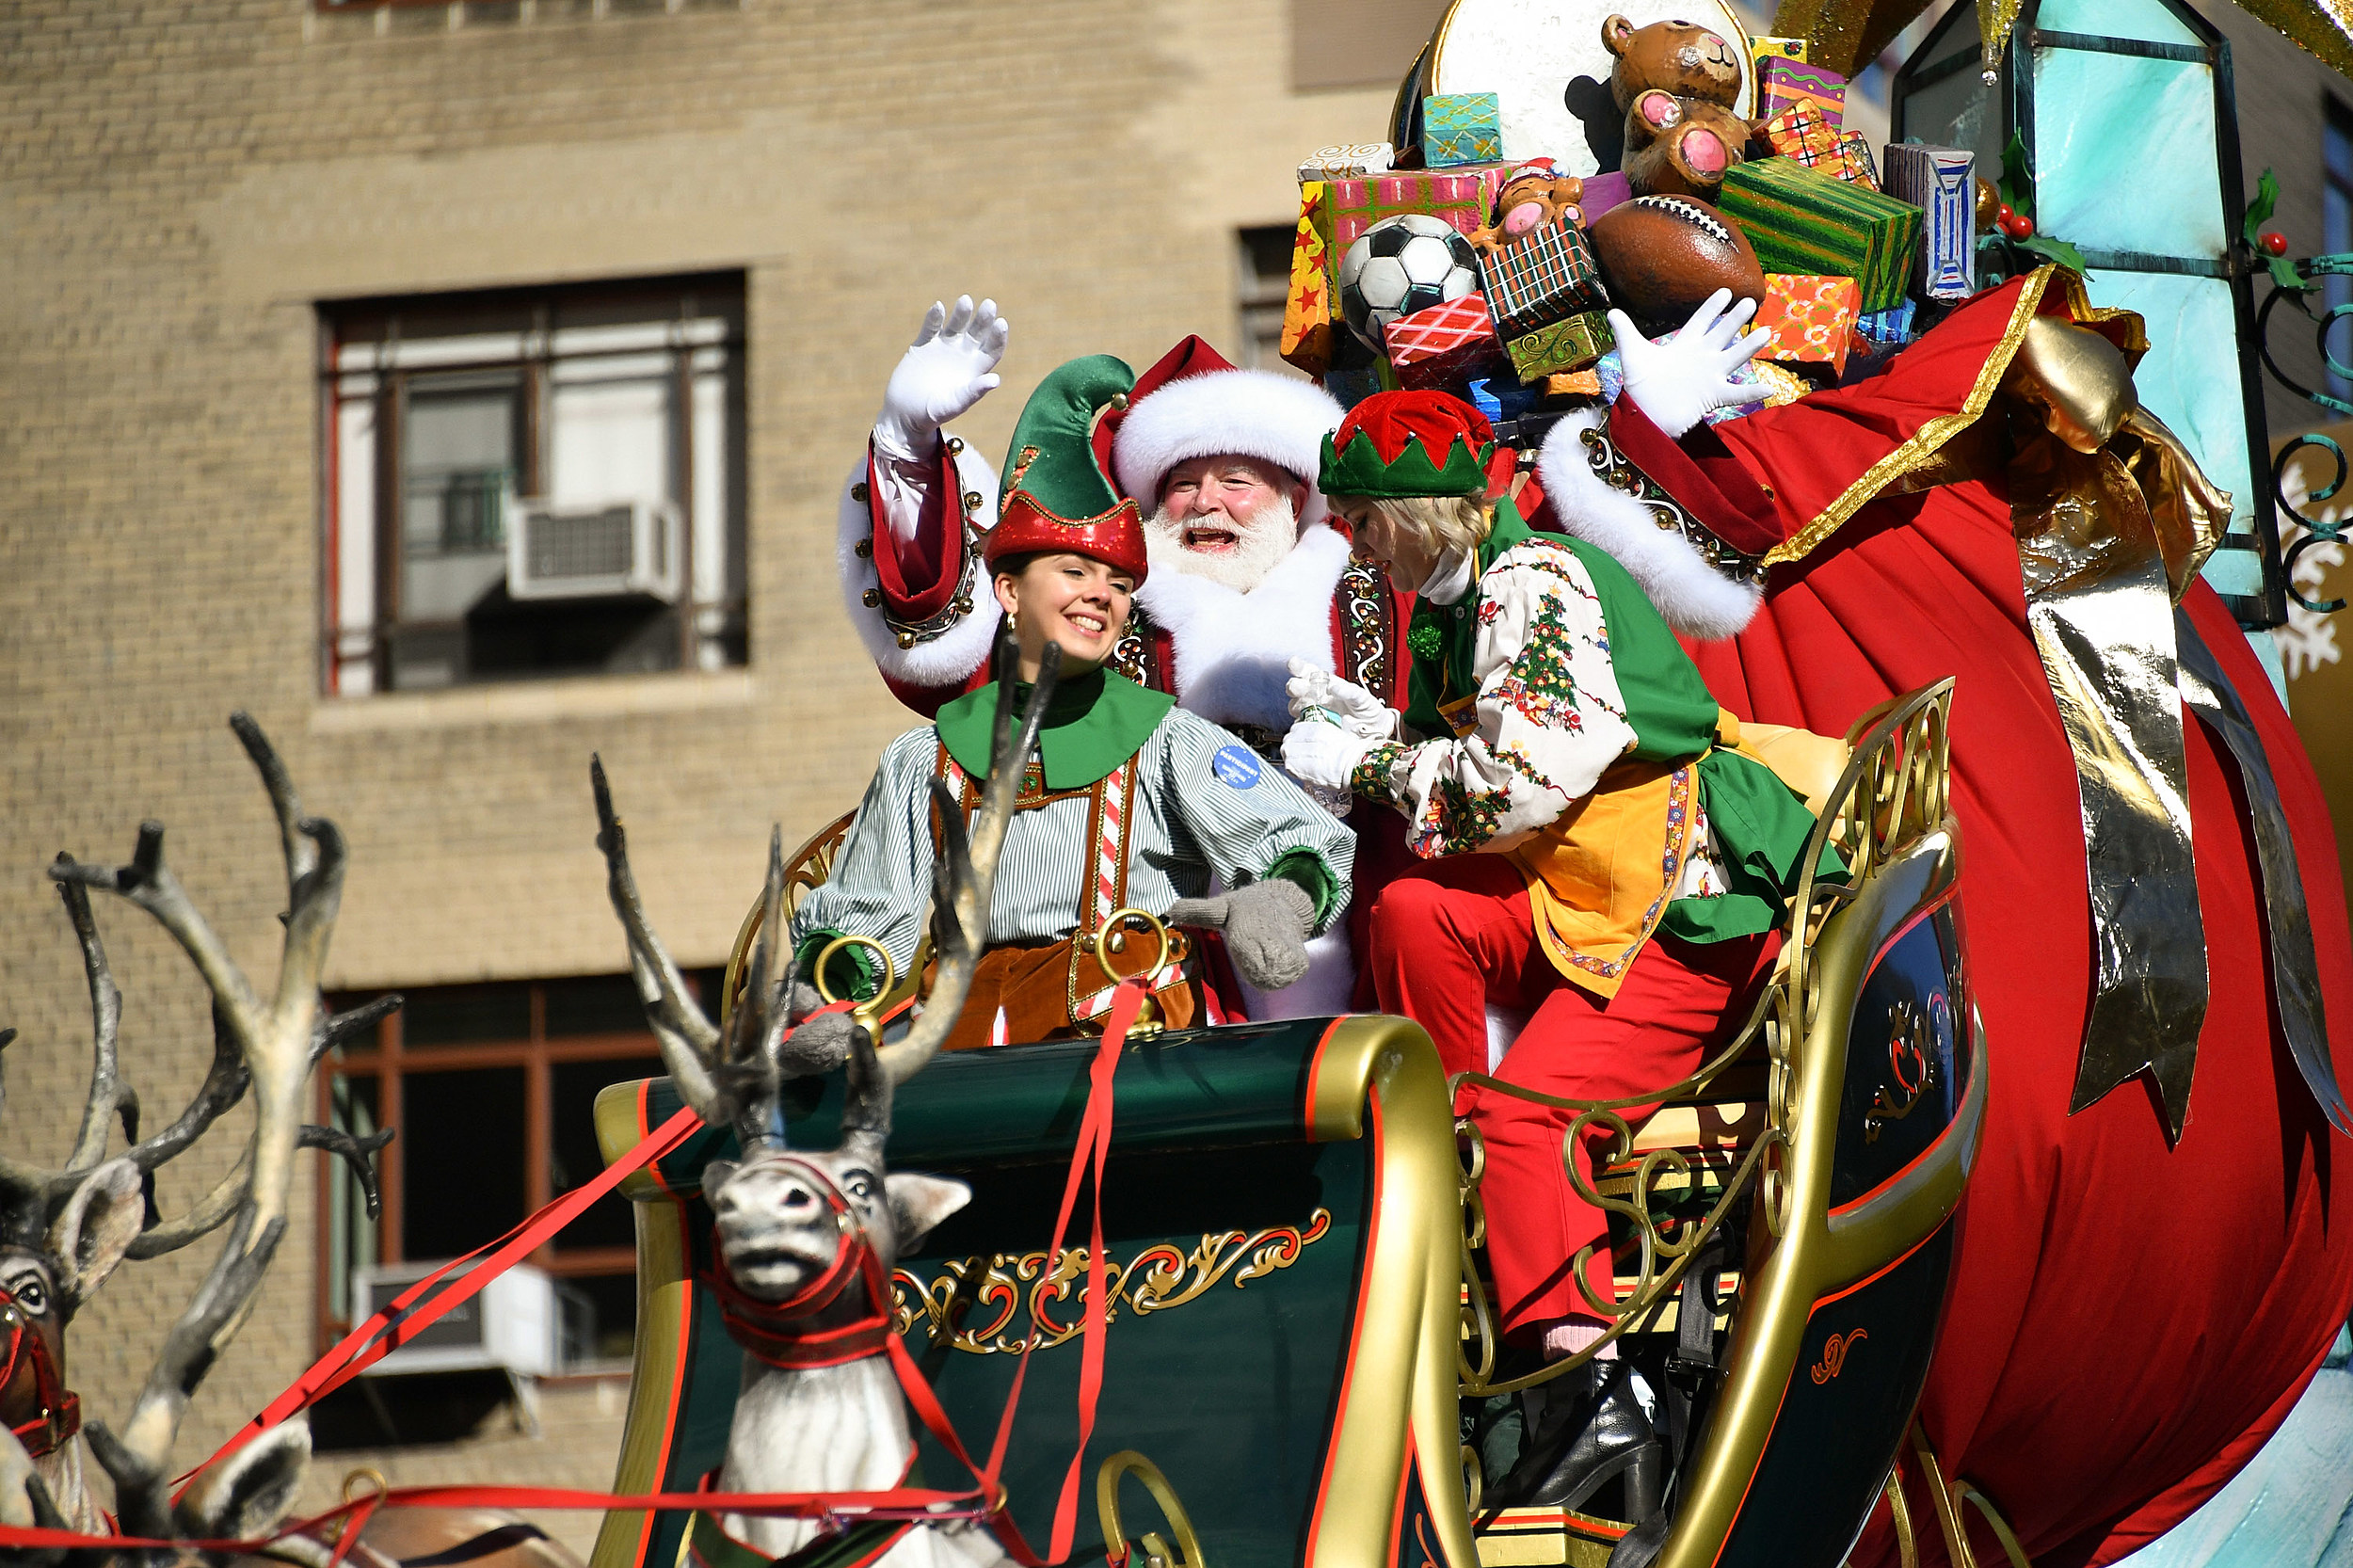 Christmas Parade 2021 Billings Mt Route Christmas Parades This Weekend